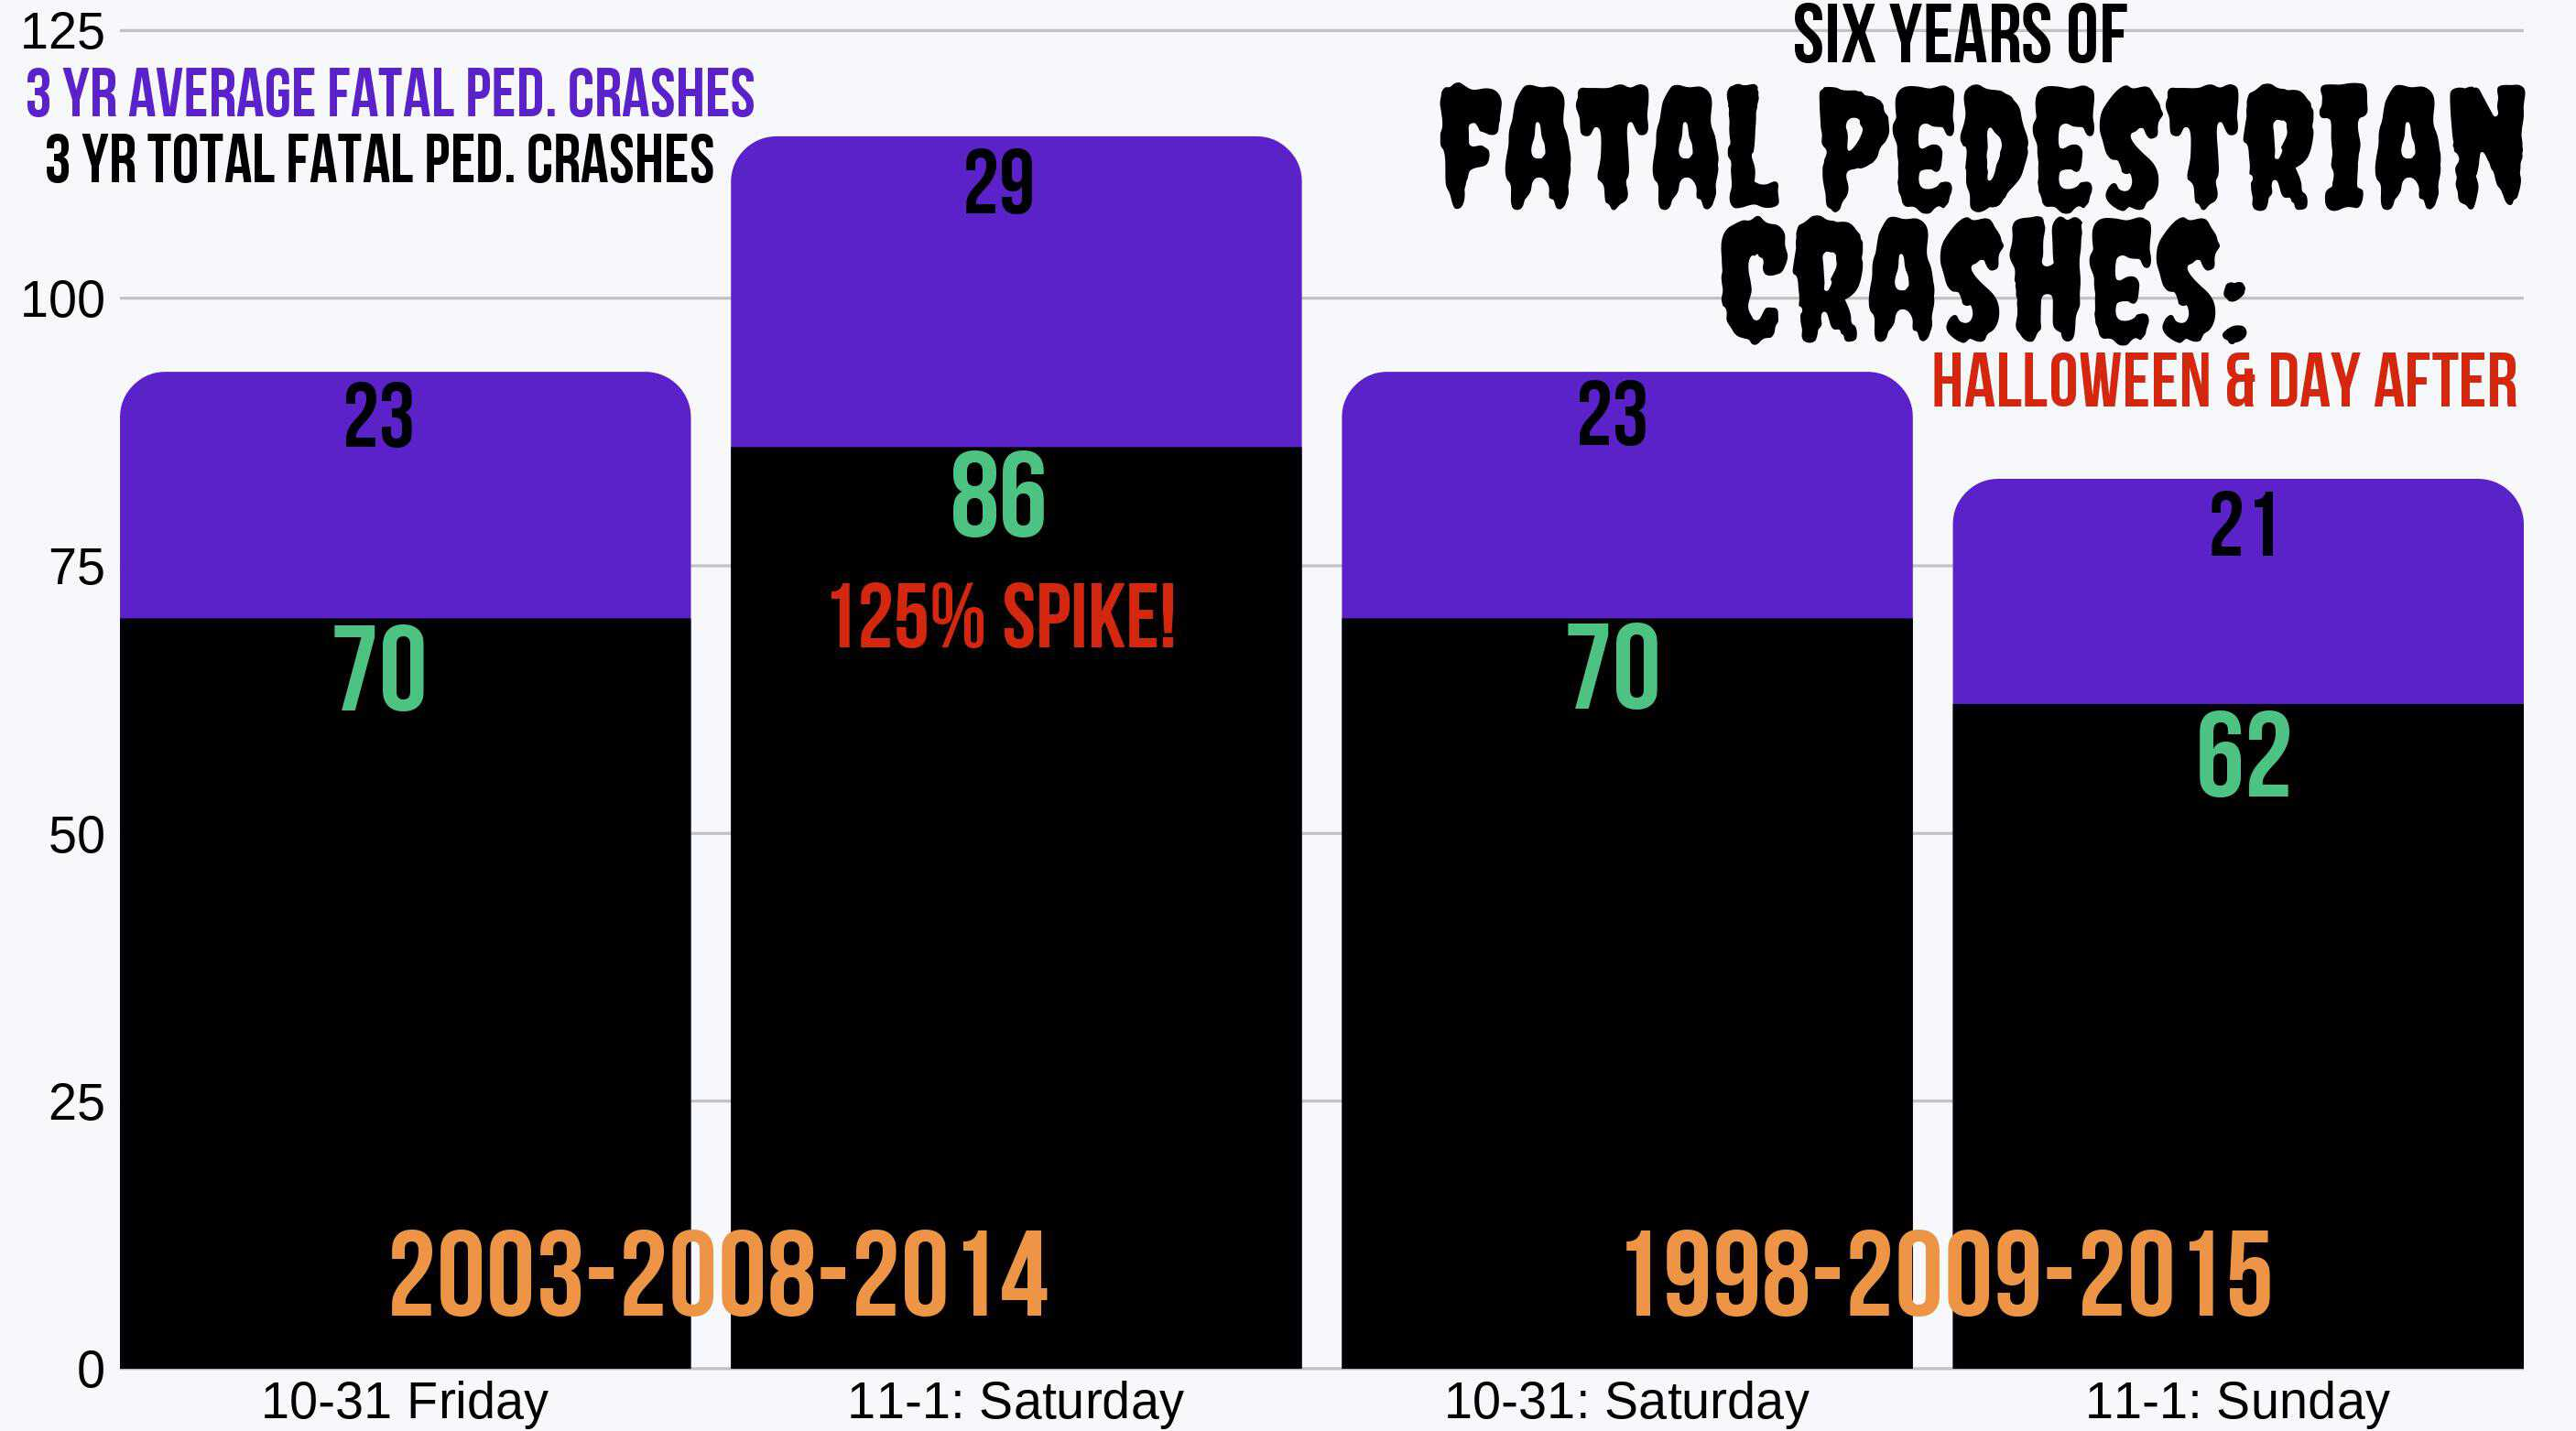 Fatal crashes involving pedestrians on Halloween and day after Friday/Saturday vs Saturday/Sunday